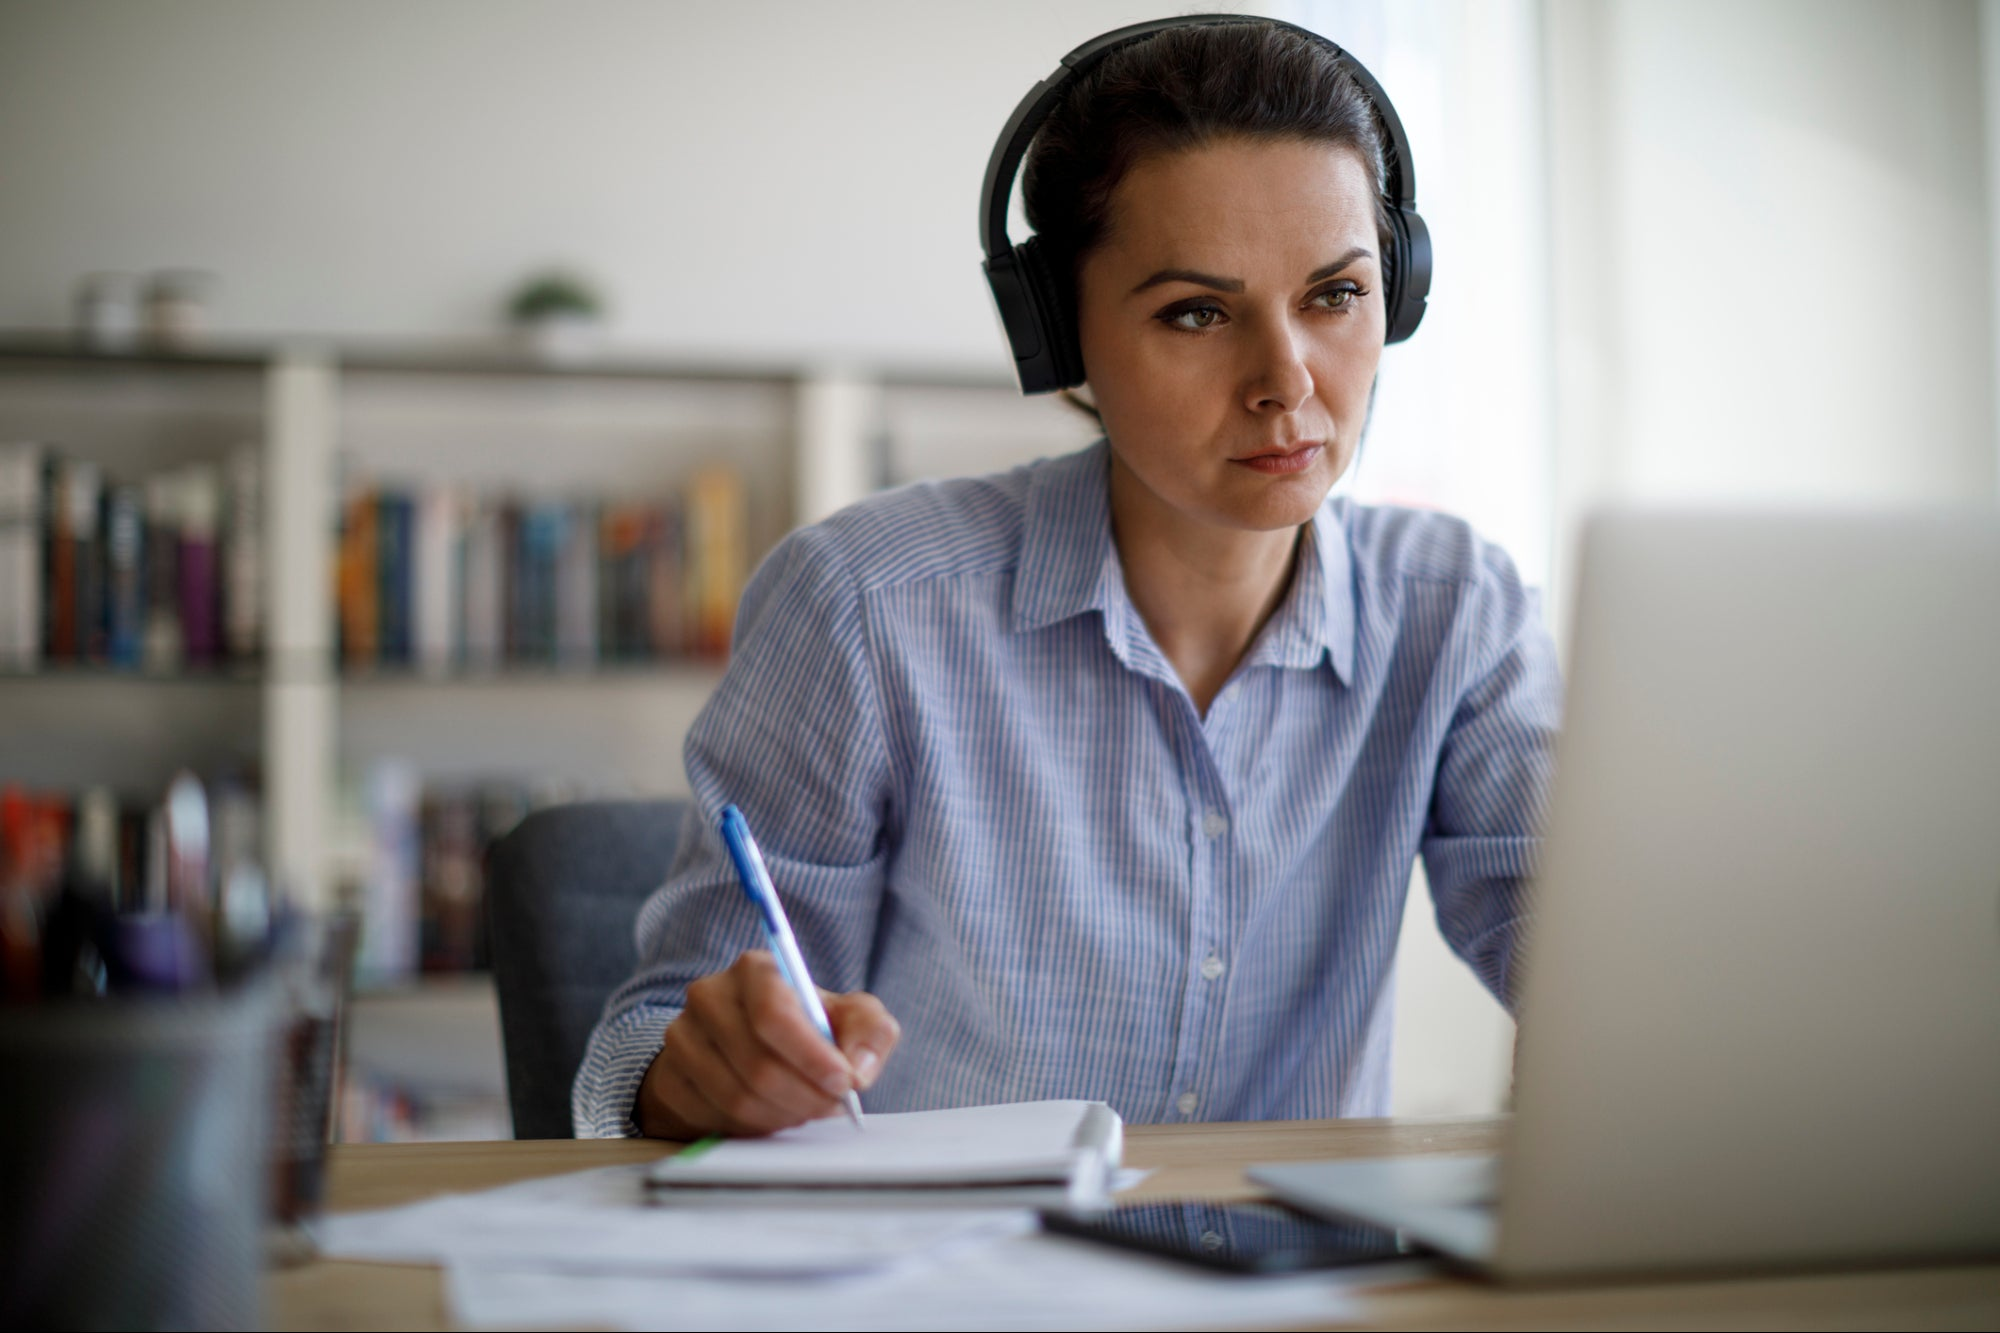 The 3 Most Common Mistakes Online Course Creators Make